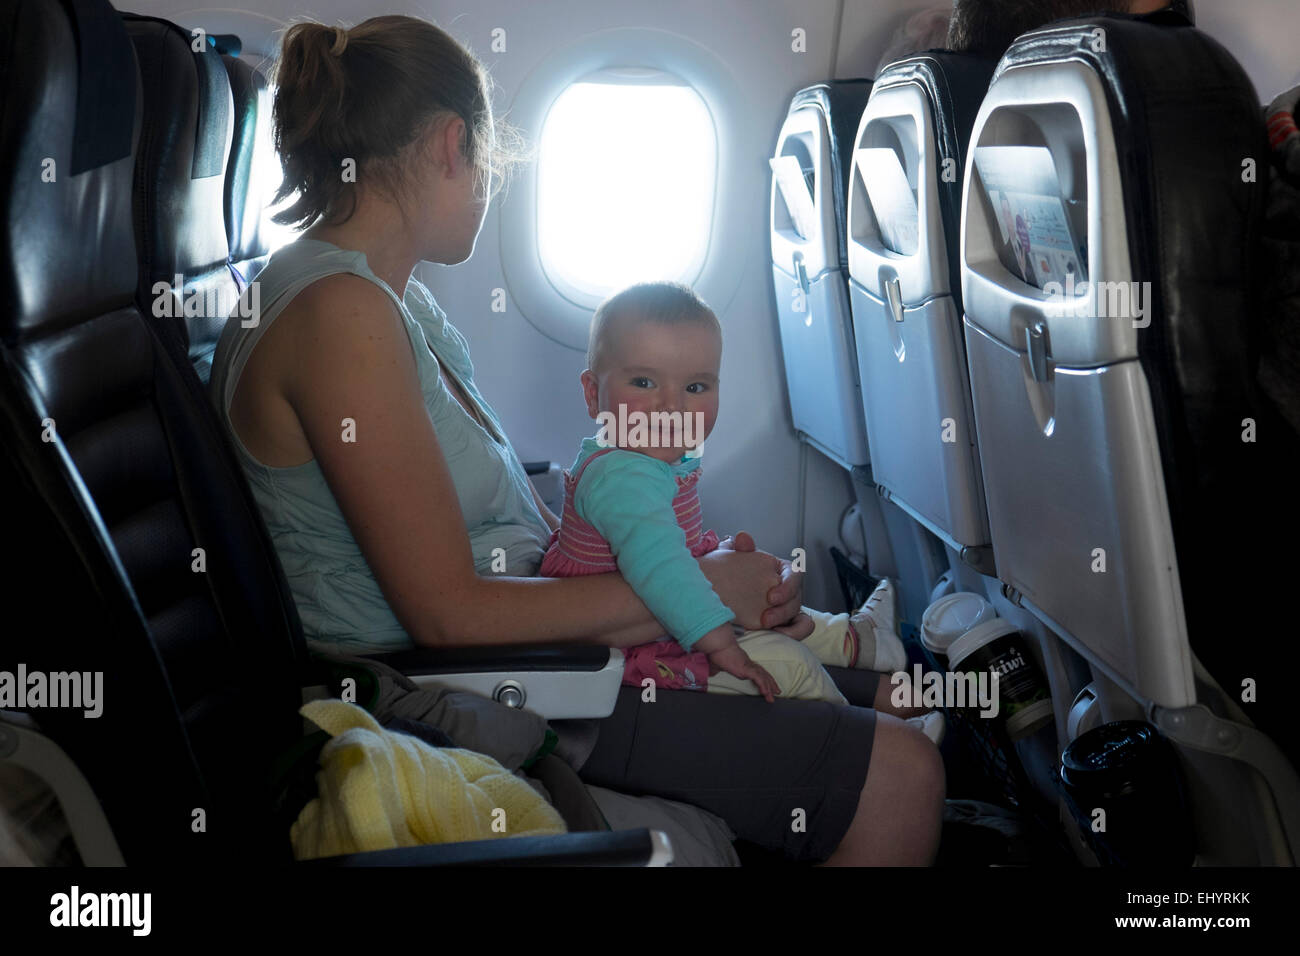 Mother with smiling baby travelling on aeroplane - Stock Image